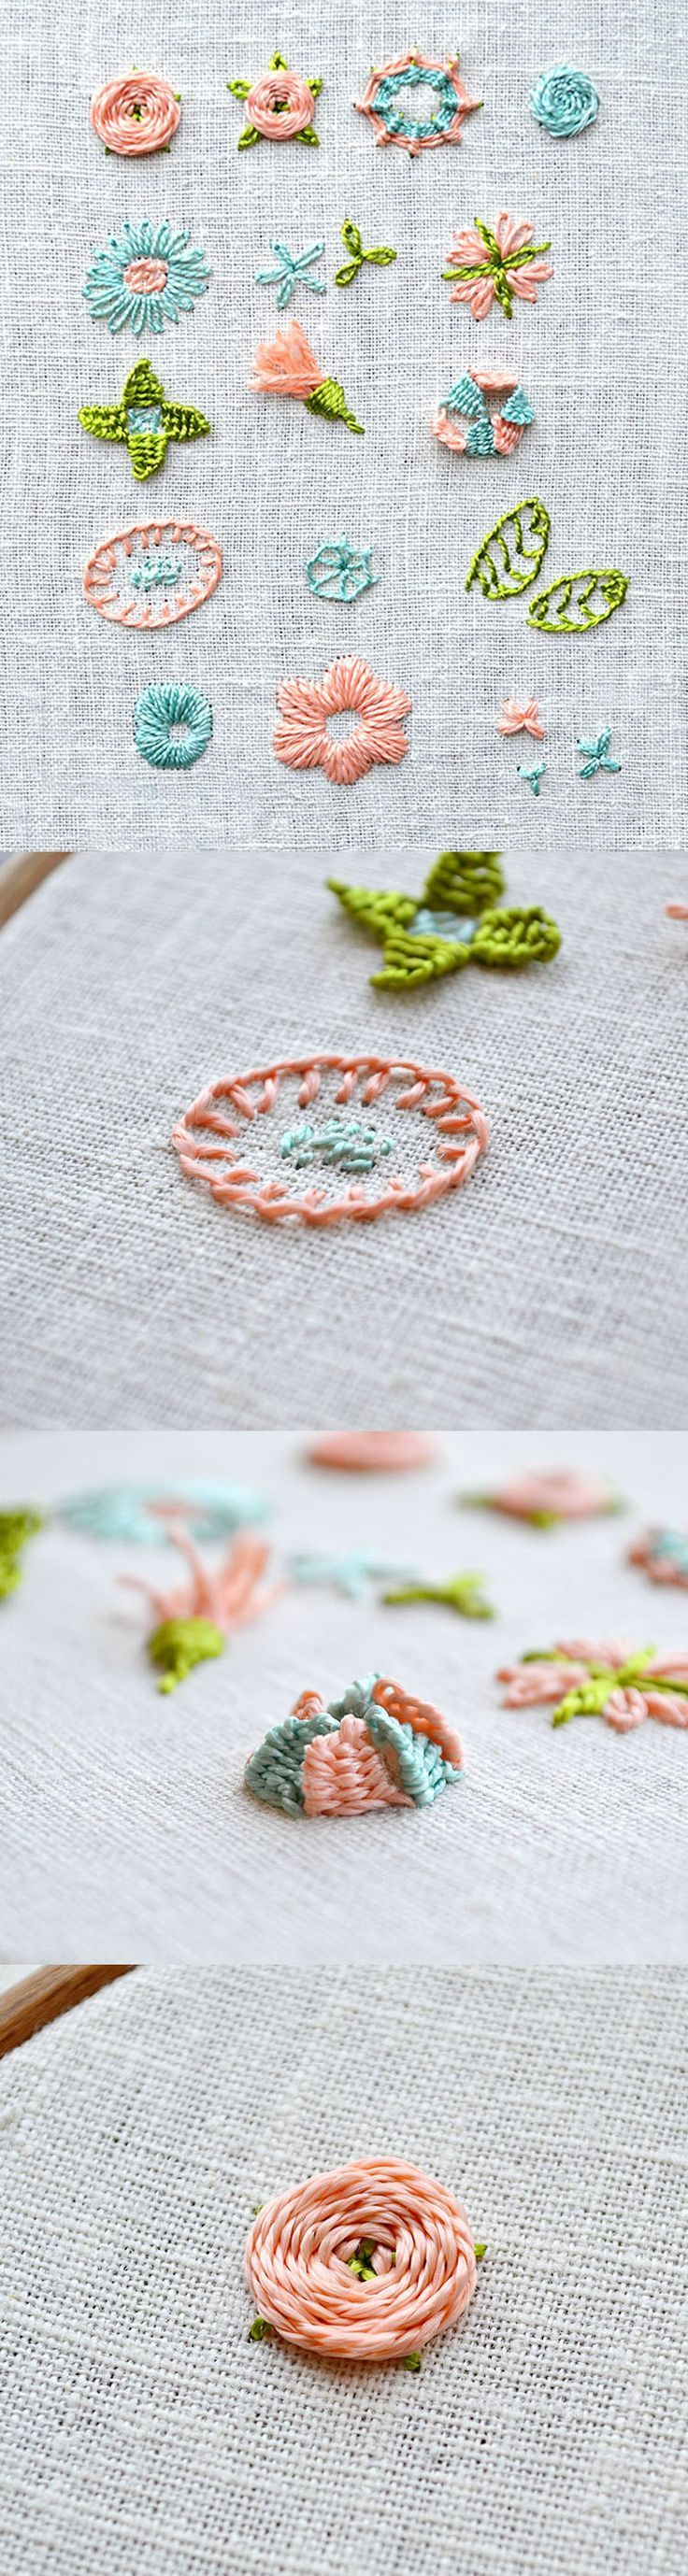 the flower embroidery days - learn to embroider flowers with picture tutorials